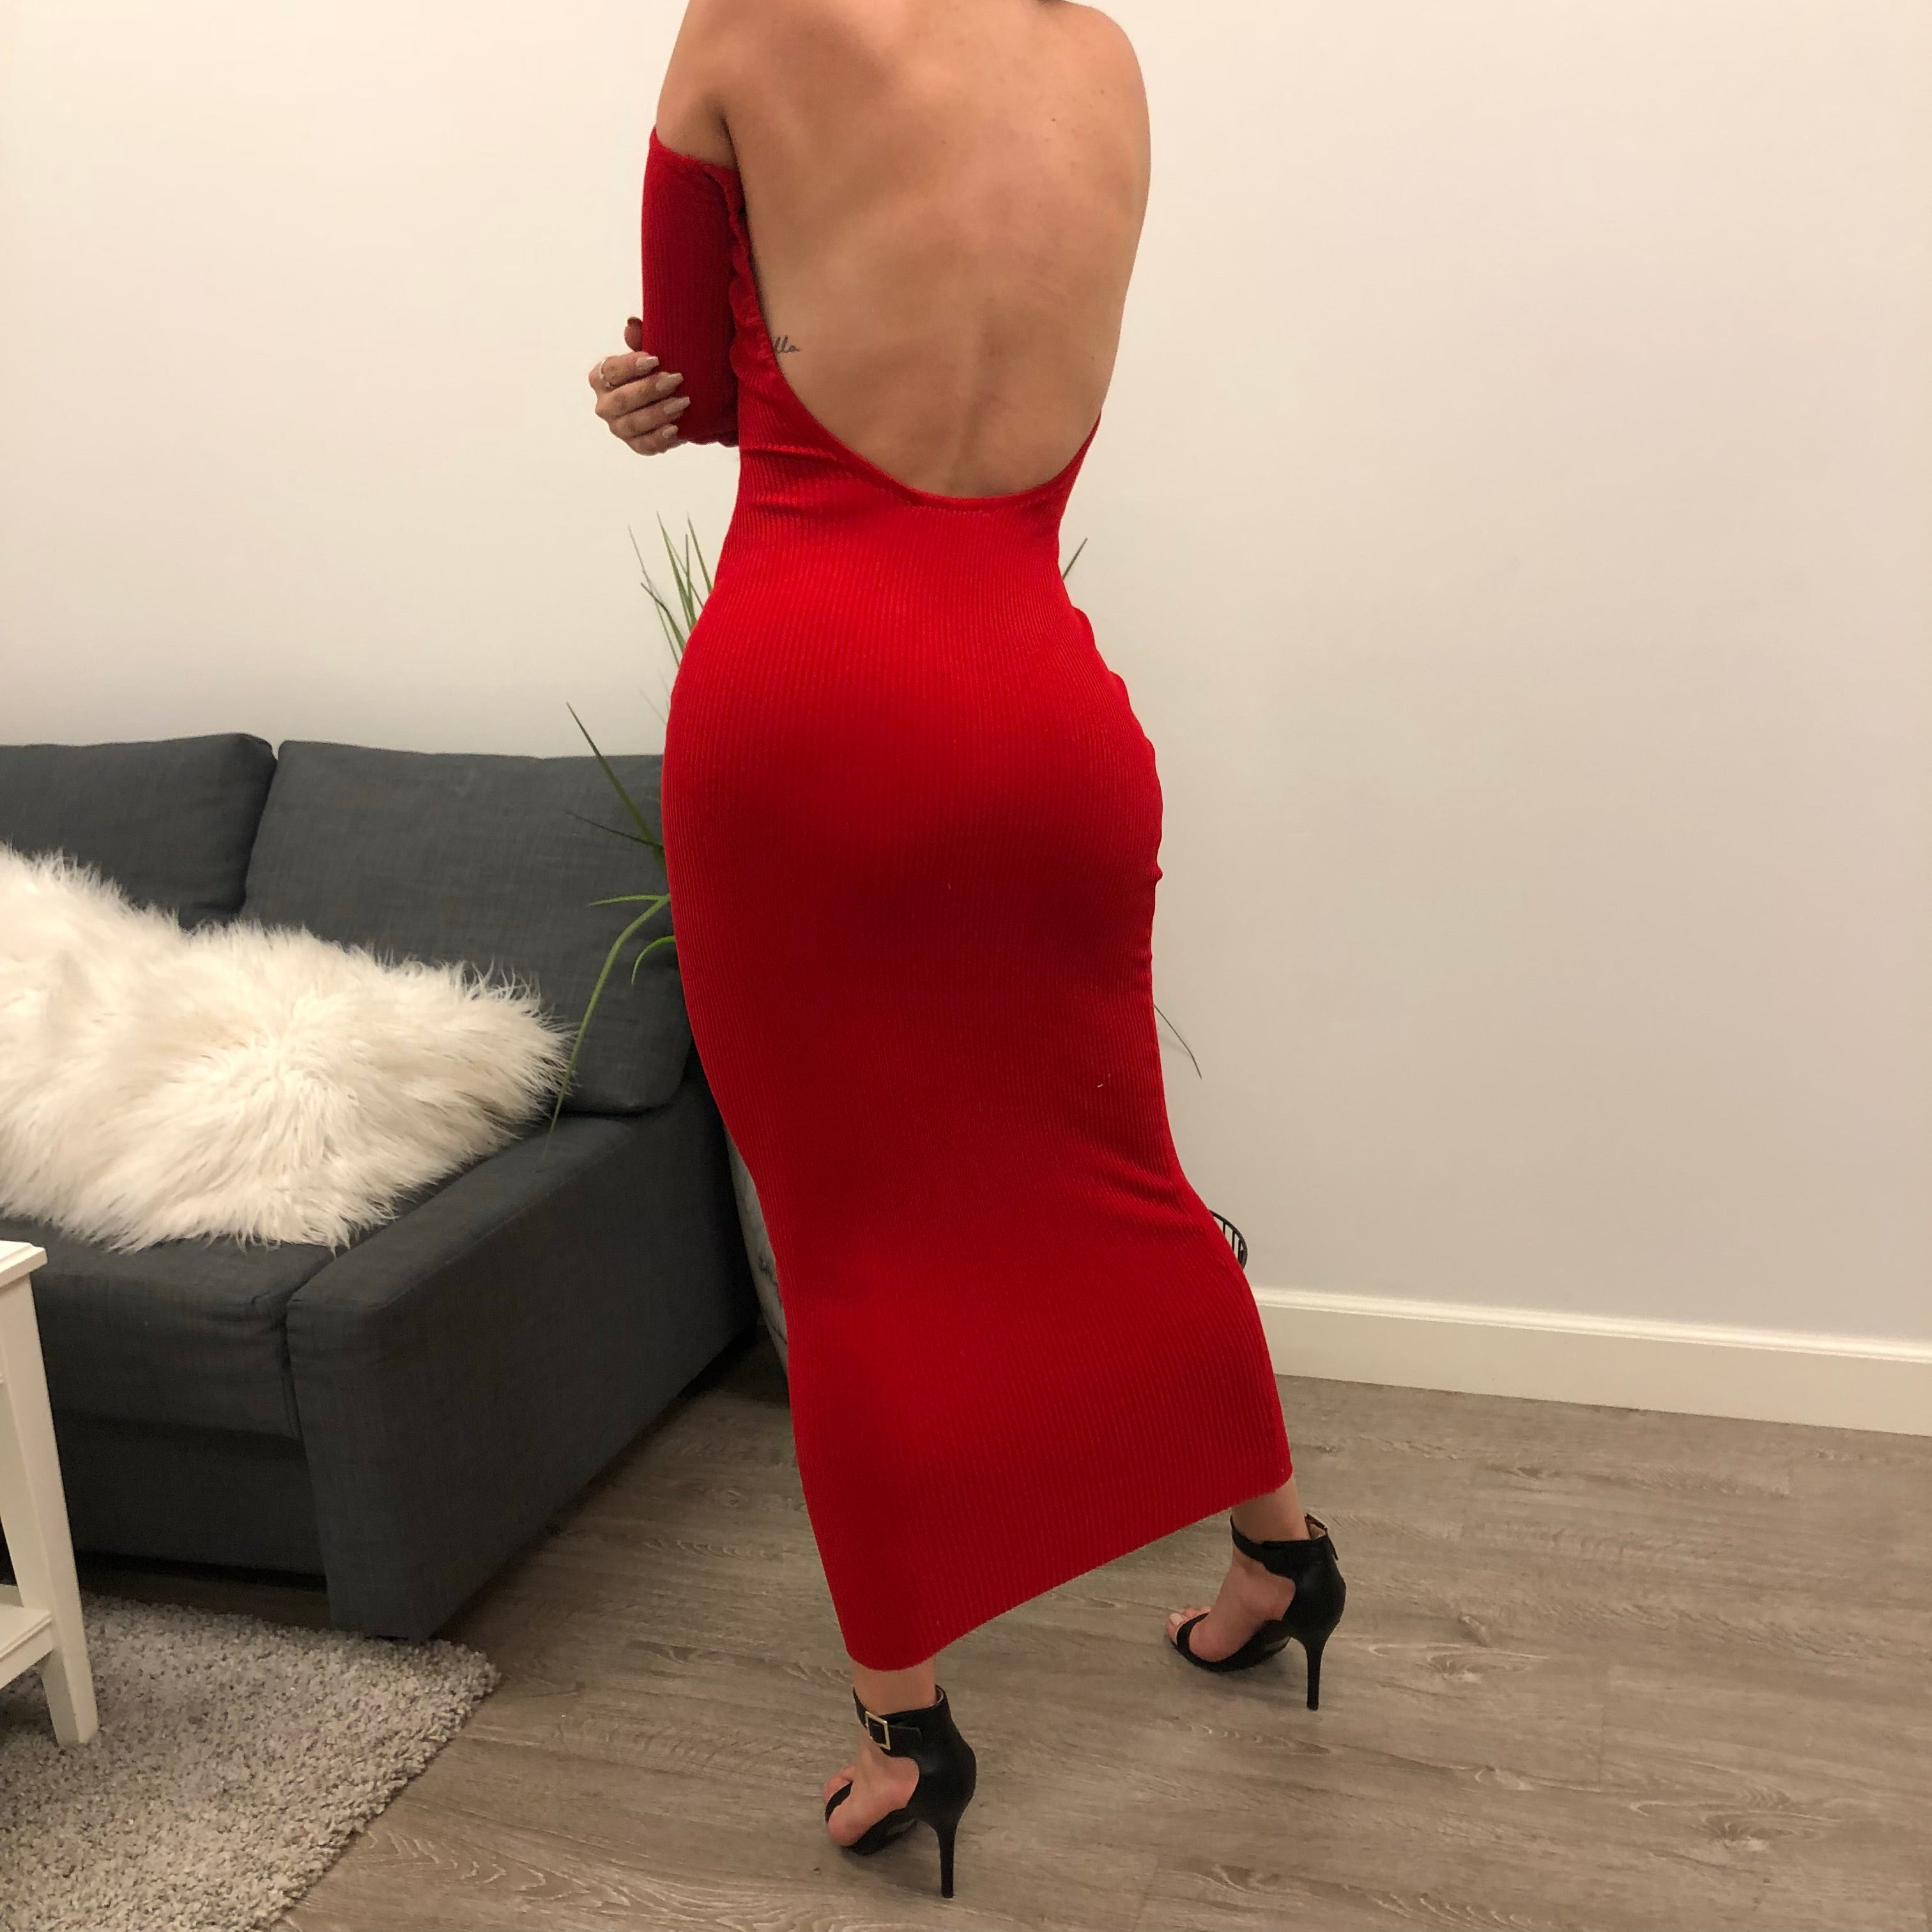 red strapless long sleeve tight dress. low u cut back. dress length is to ankles.